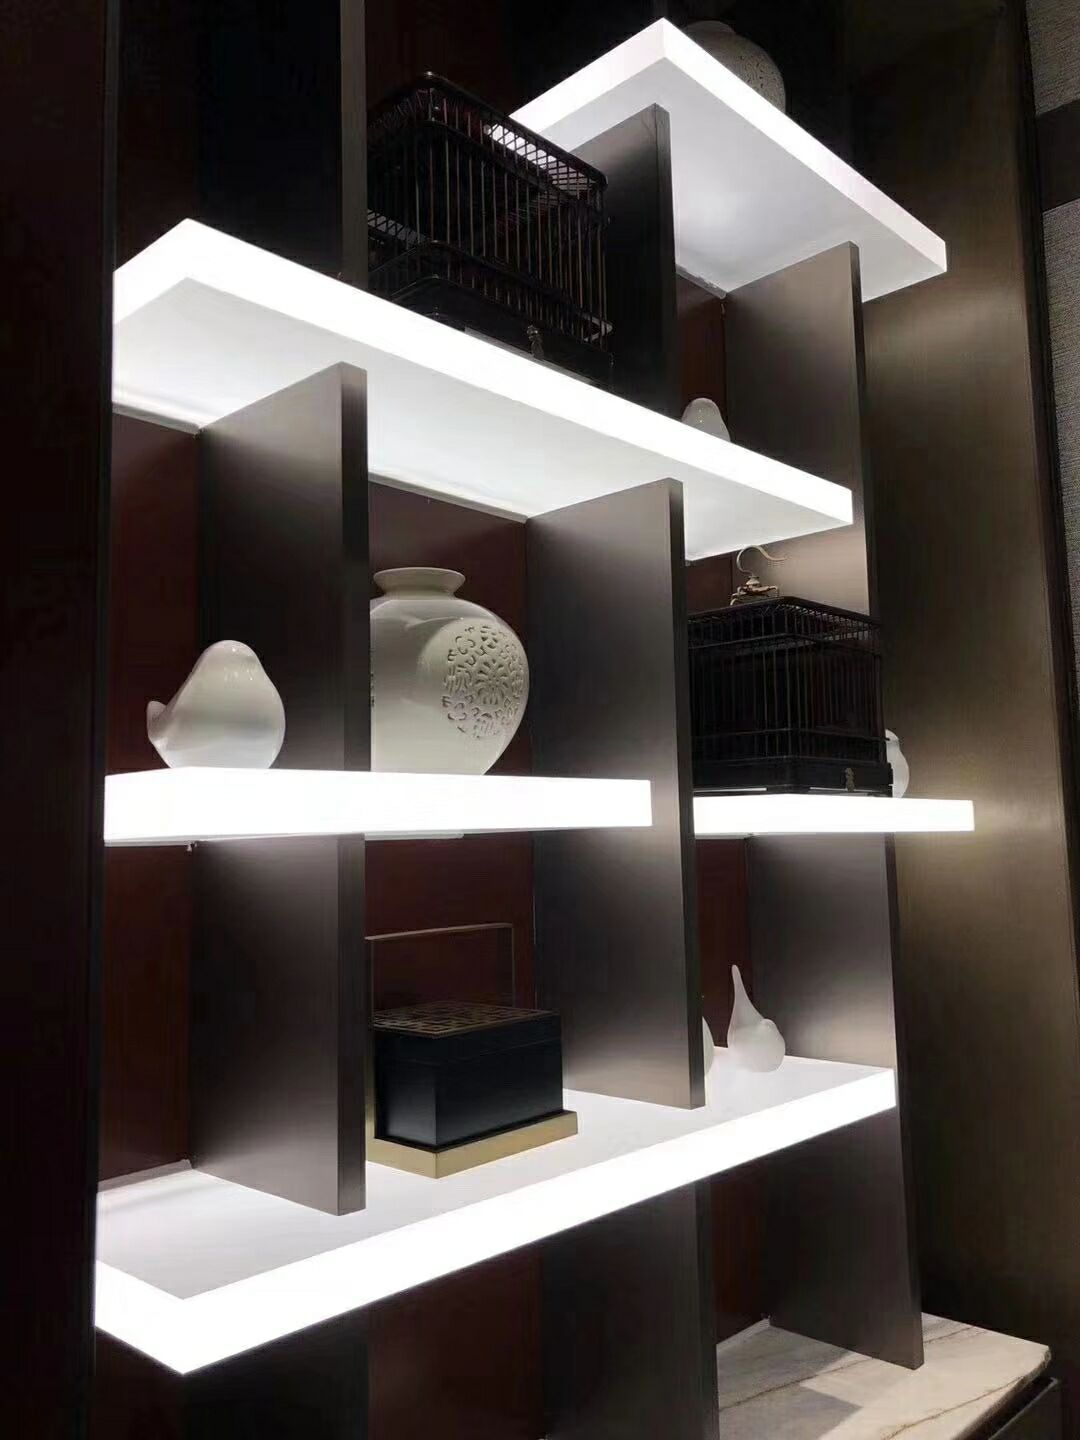 Shelf LED Backlit Panel